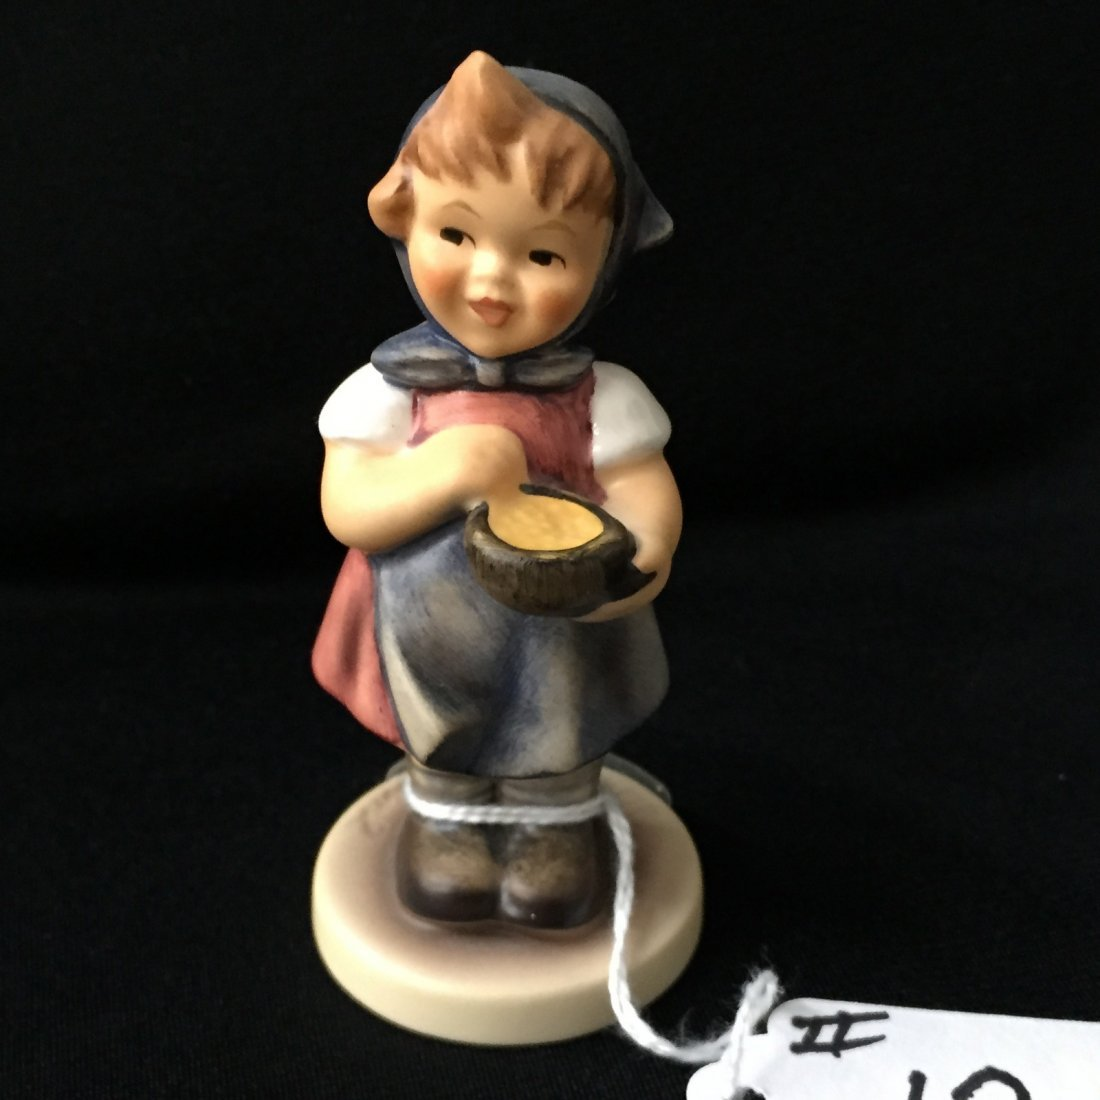 Hummel Figurine: From Me to You; Collectors Club